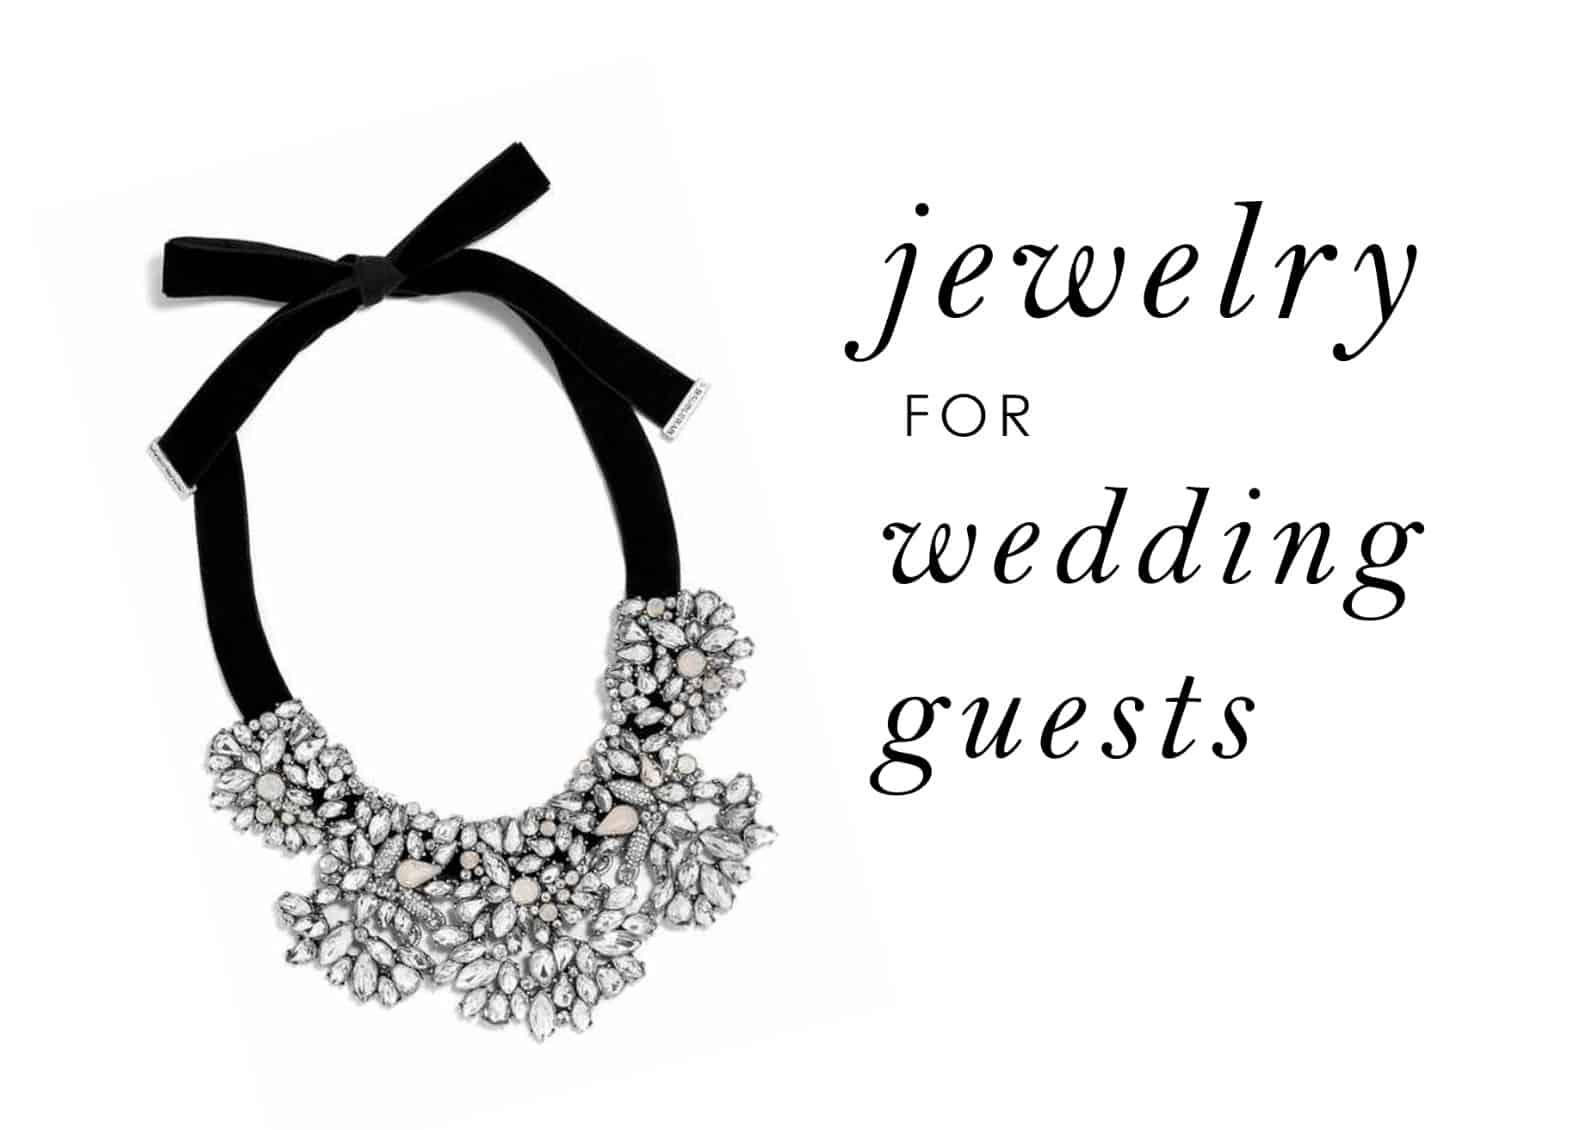 accessories and jewelry for wedding guests